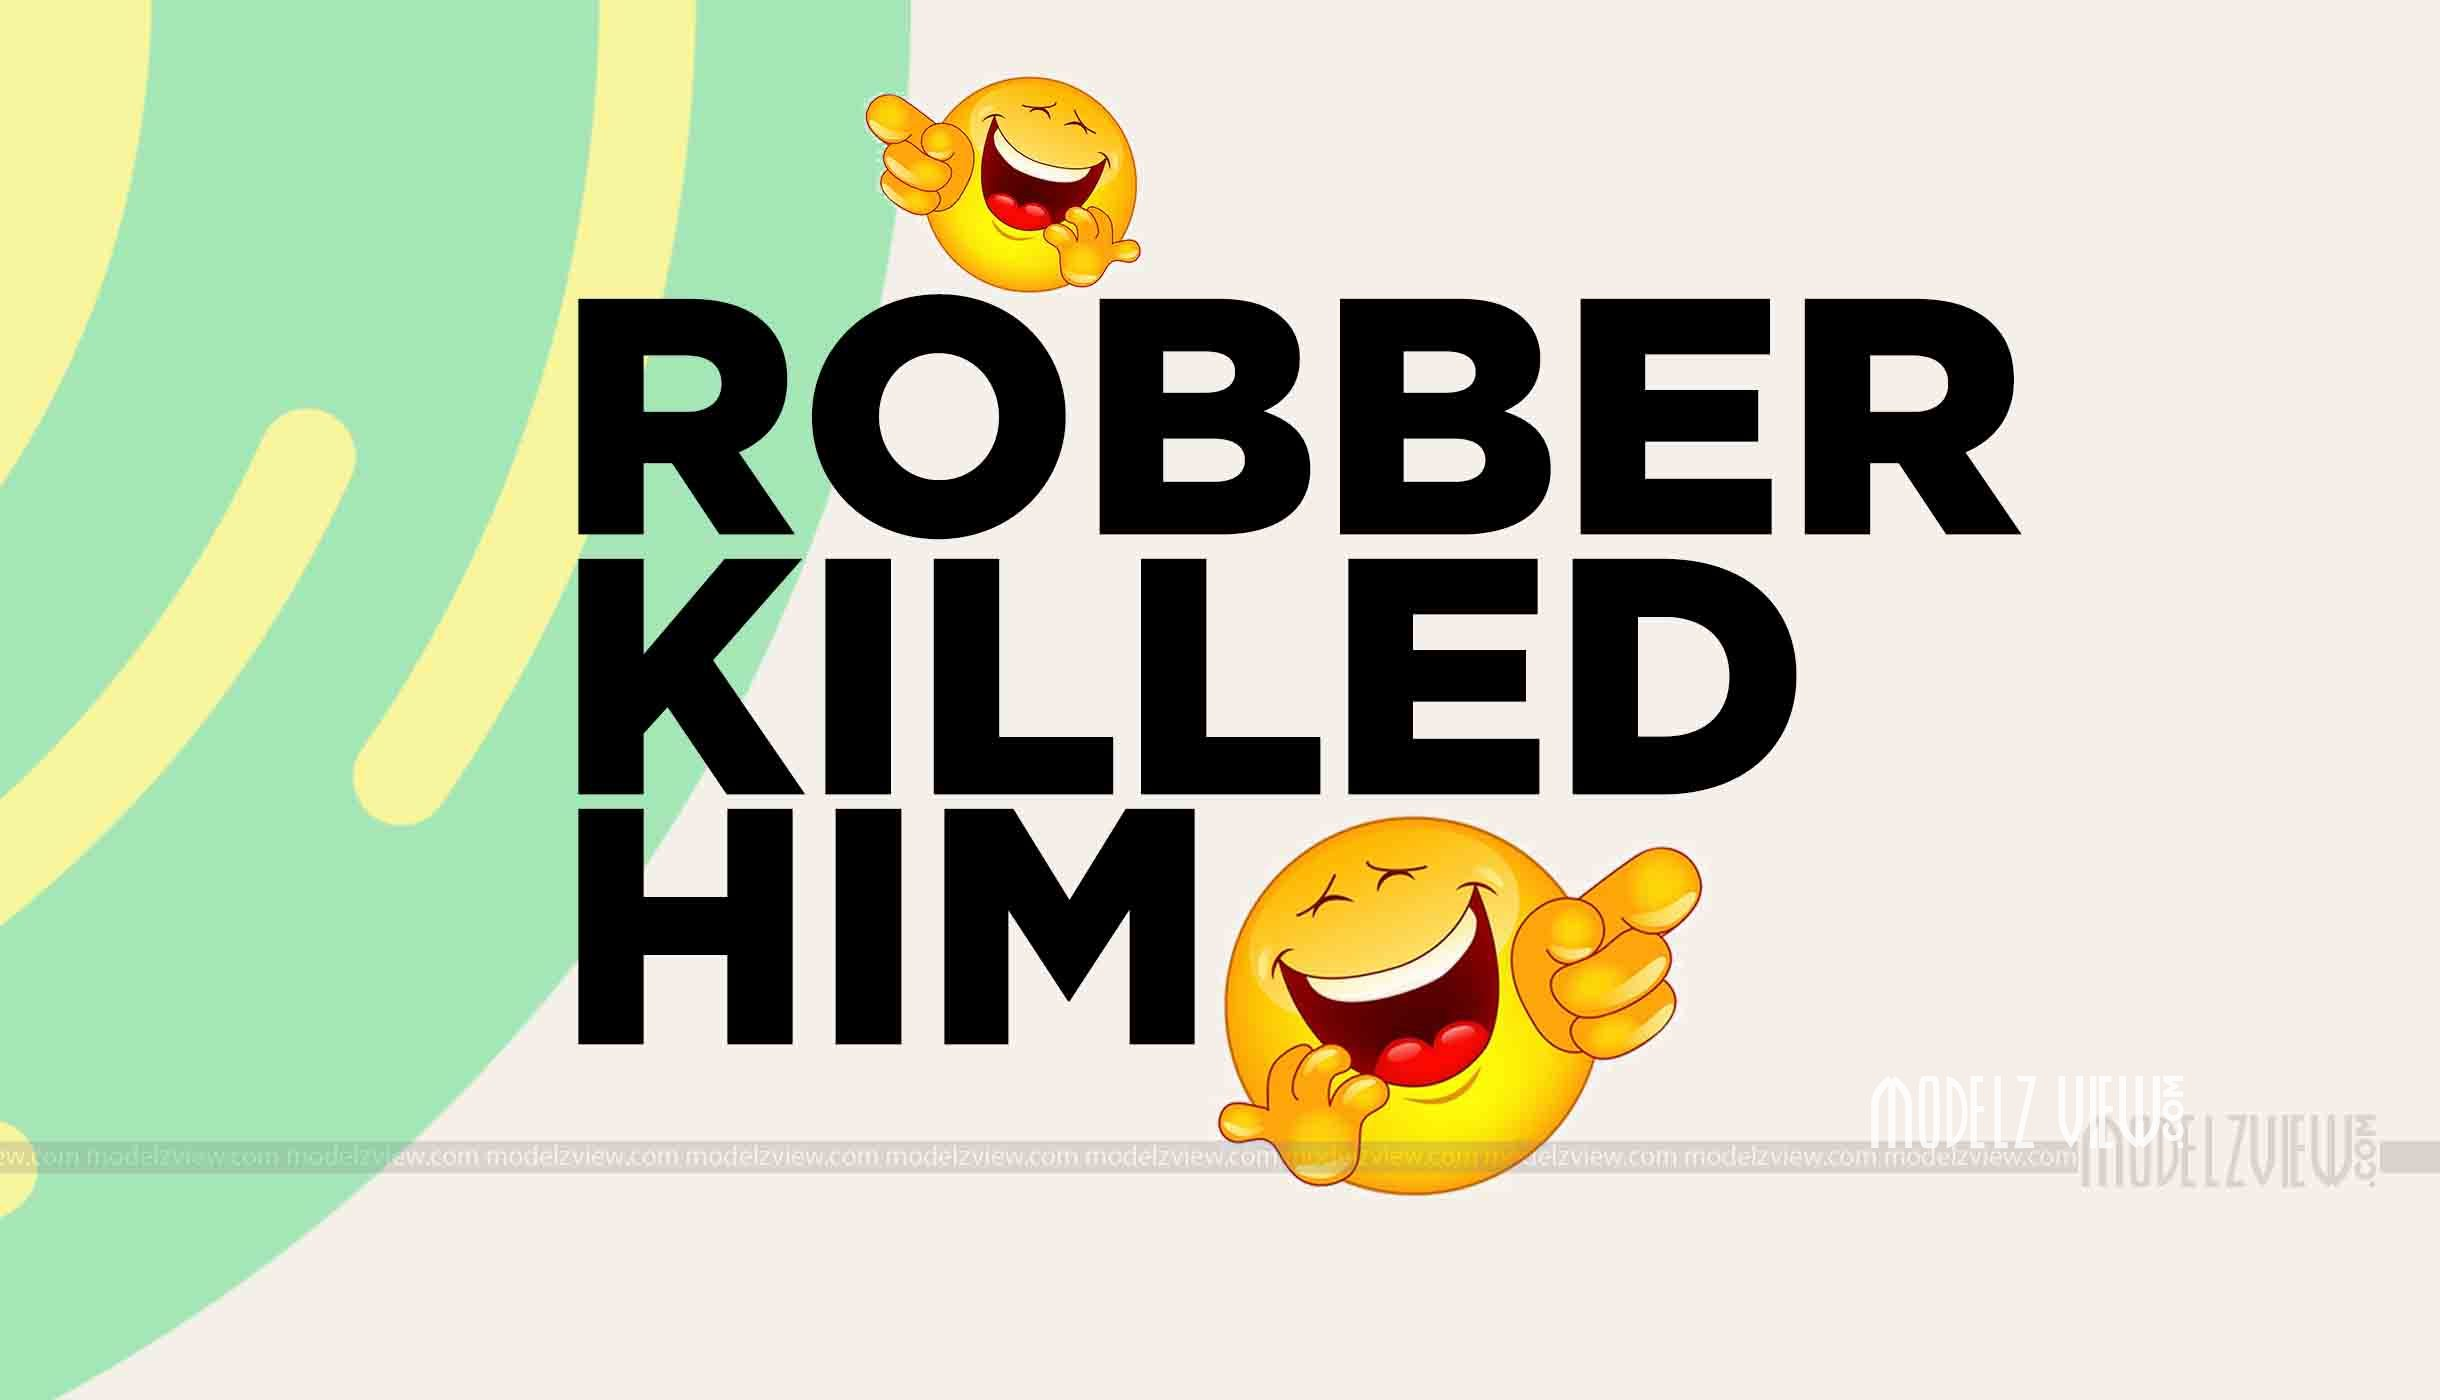 Robber killed him – Funny Jokes That Never Get Old vol.06